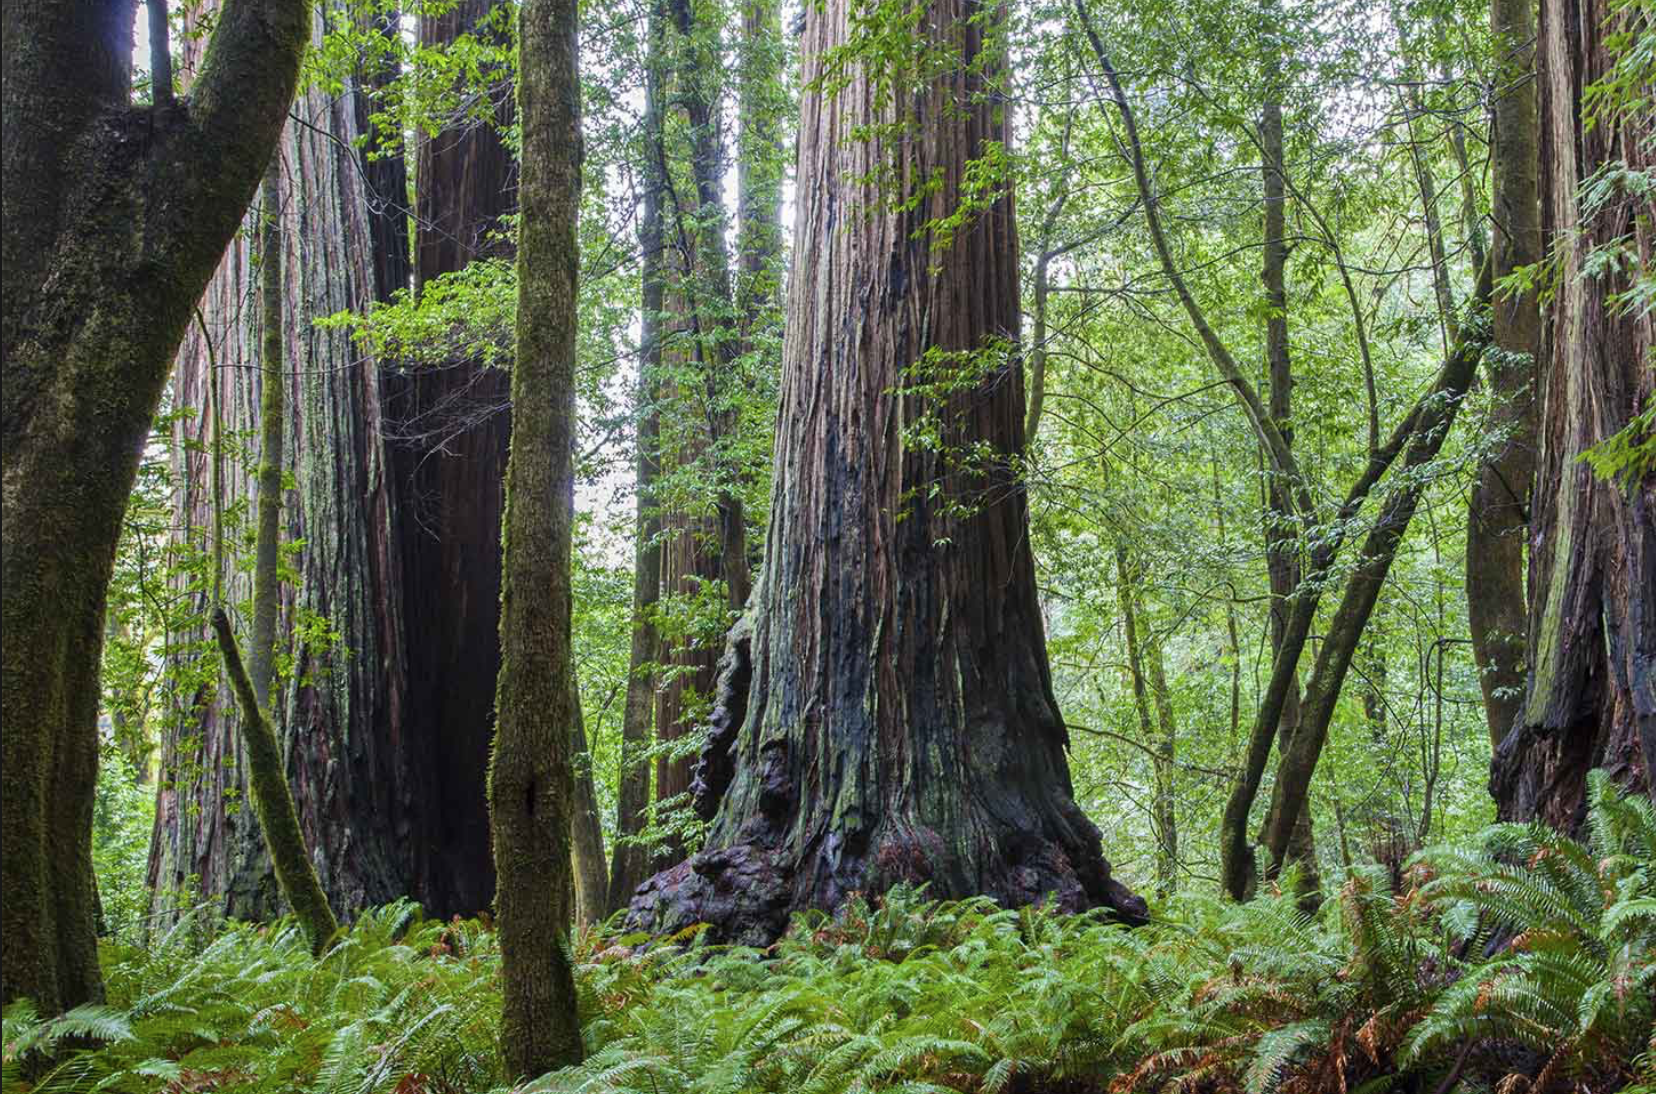 REDWOOD GROVE:  who anchors you when facing life's headwinds